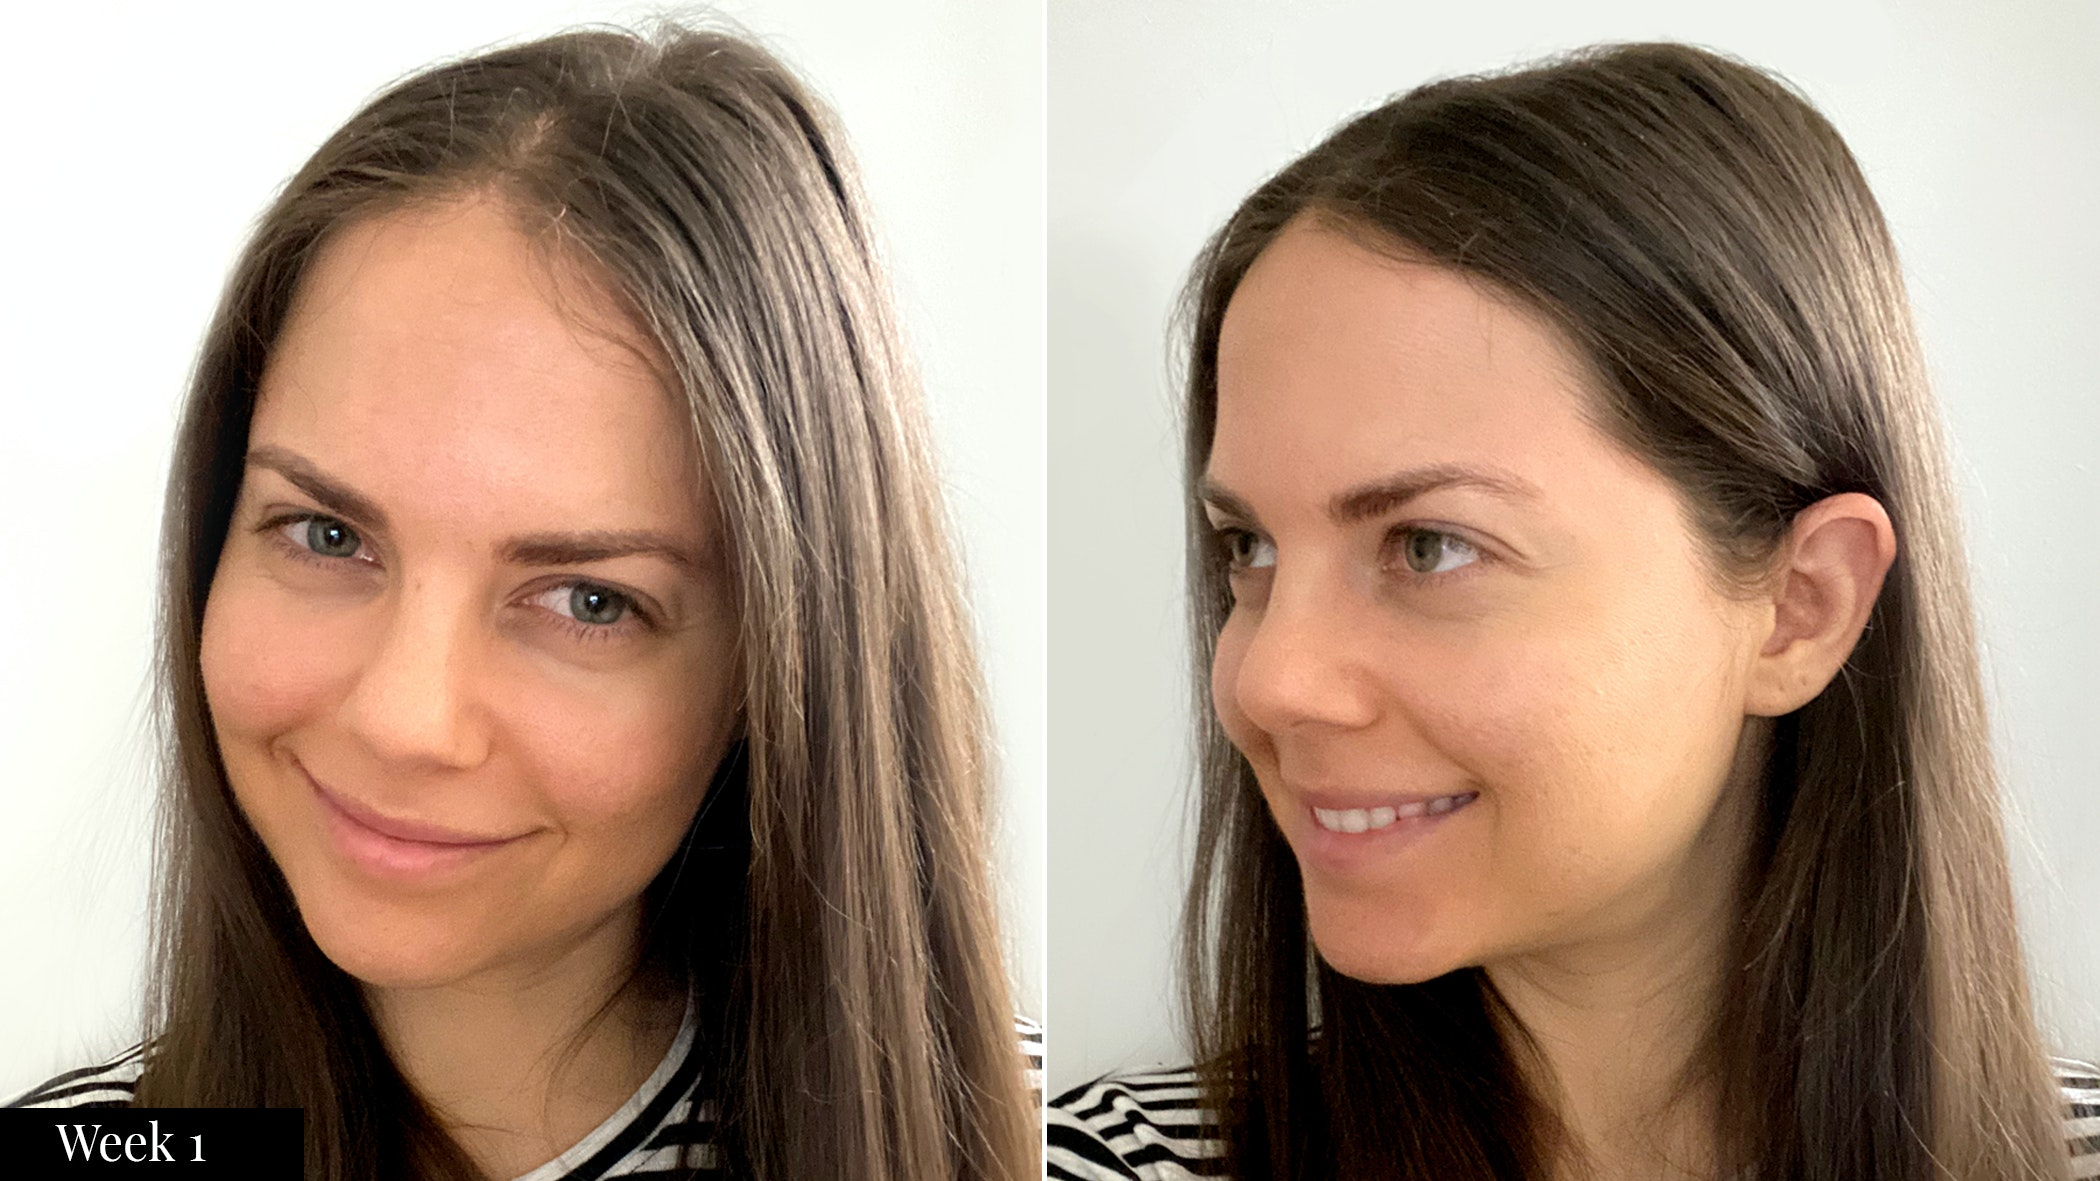 SkinMedica skincare results  after one week